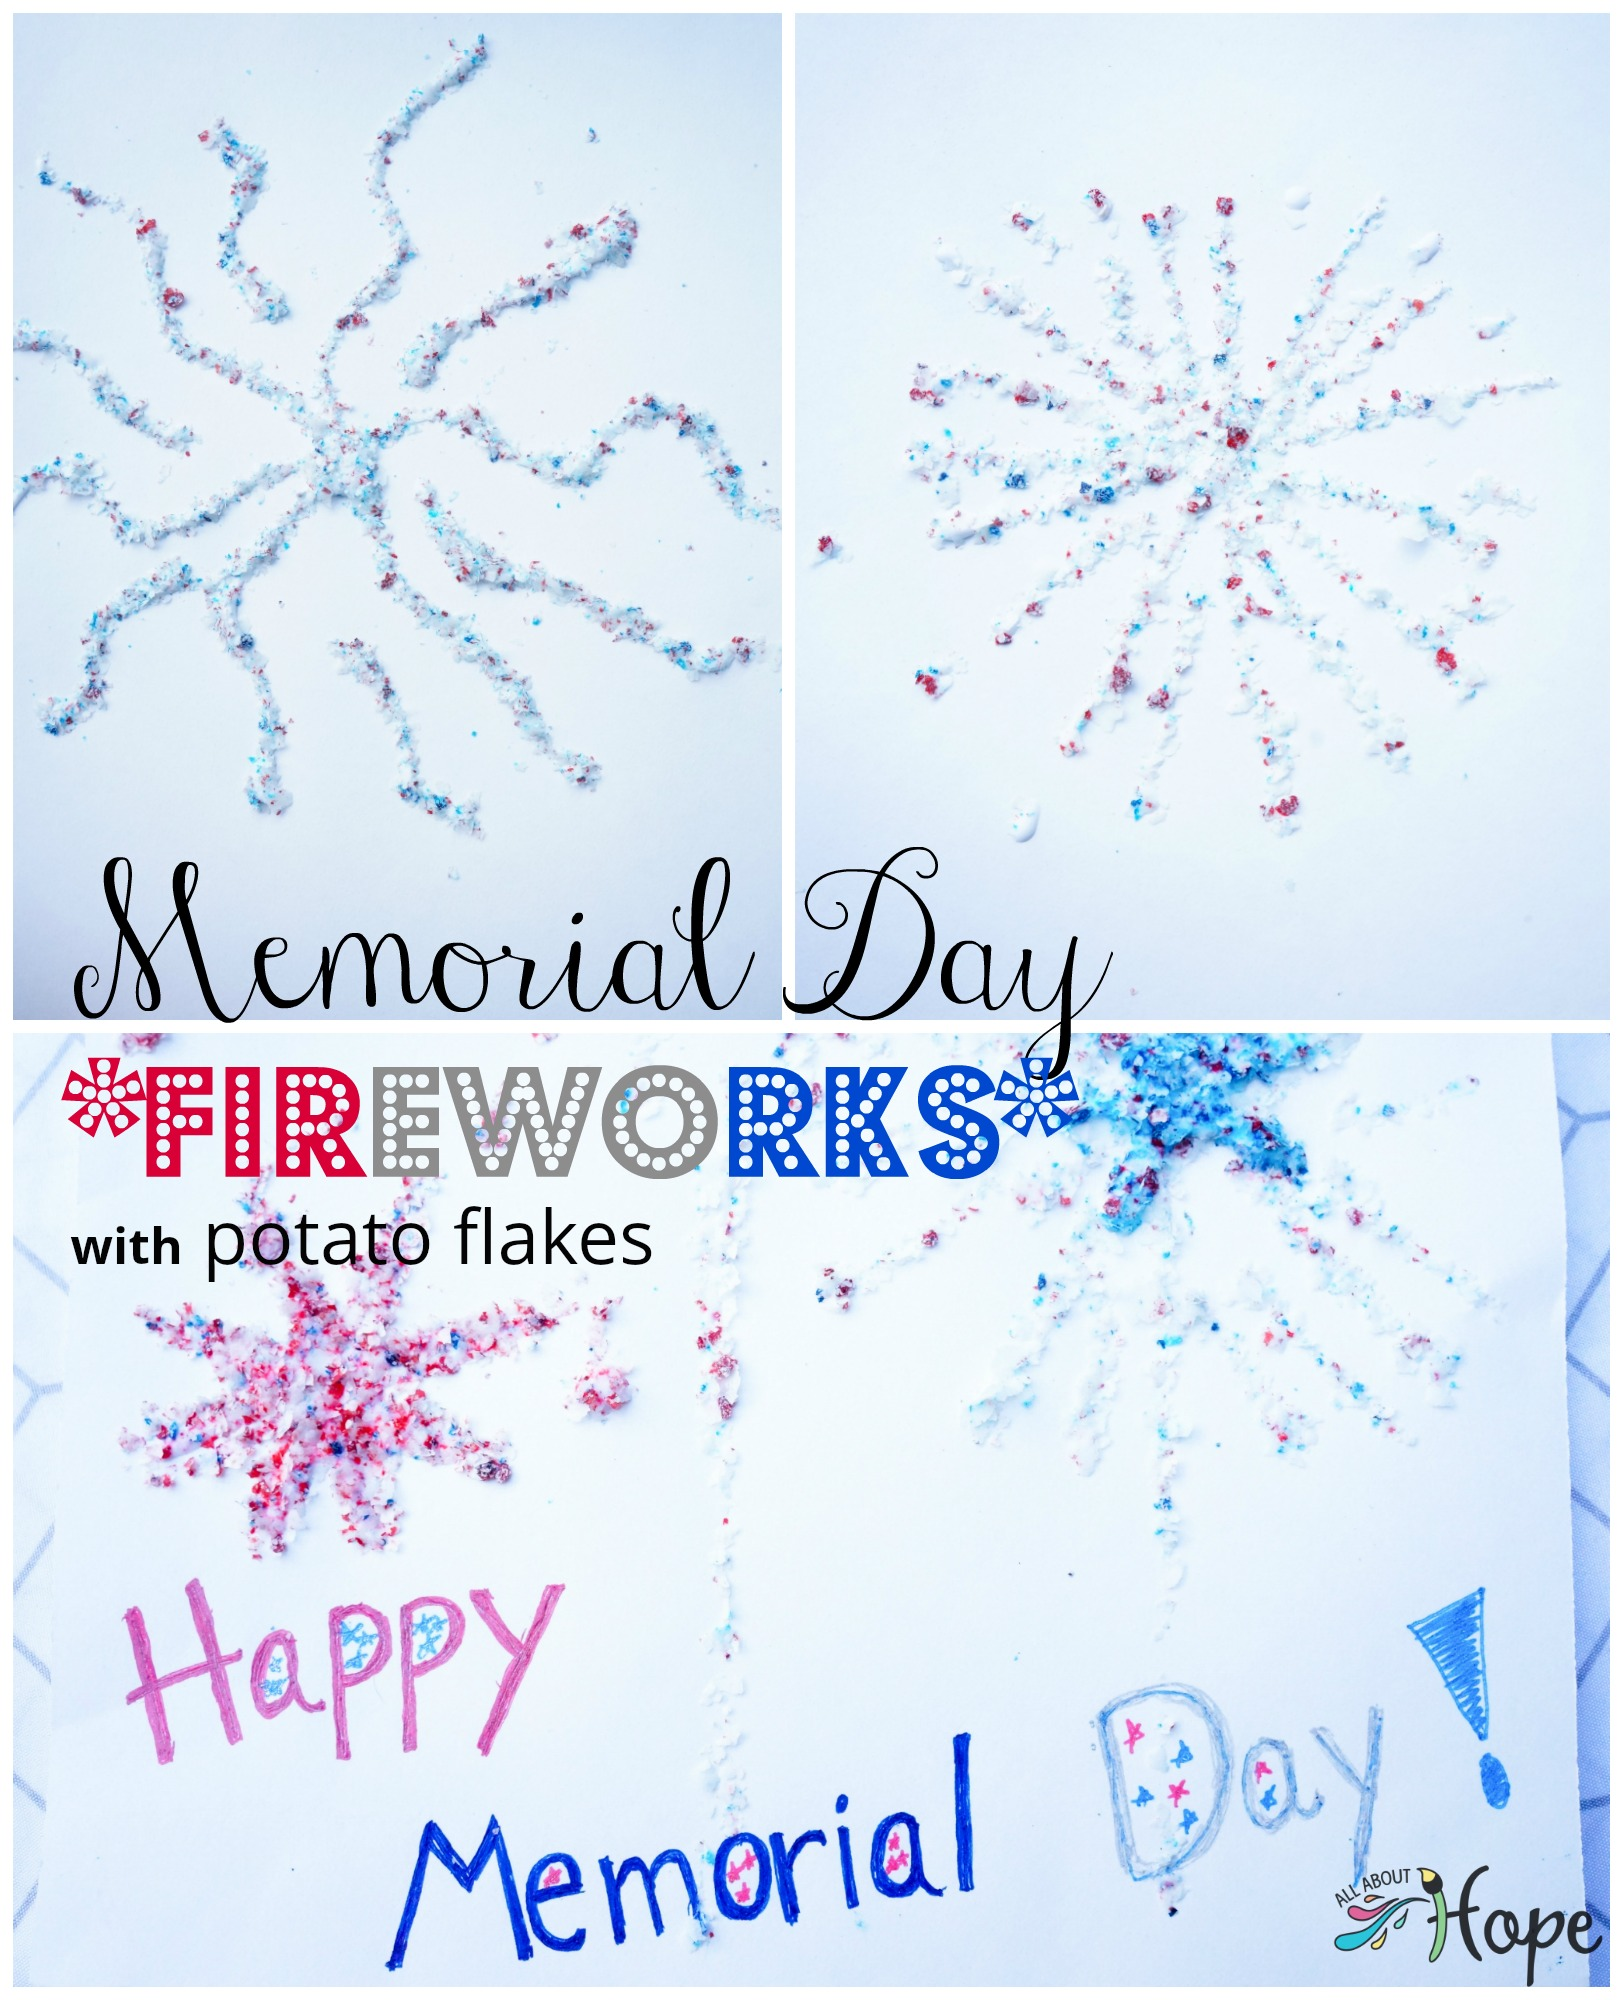 DIY Memorial Day Craft, DIY Memorial Day Fireworks Craft, DIY Patriotic Craft, Red White Blue craft, Potato Flakes Craft, Food Coloring Crafts, Memorial Day Fireworks